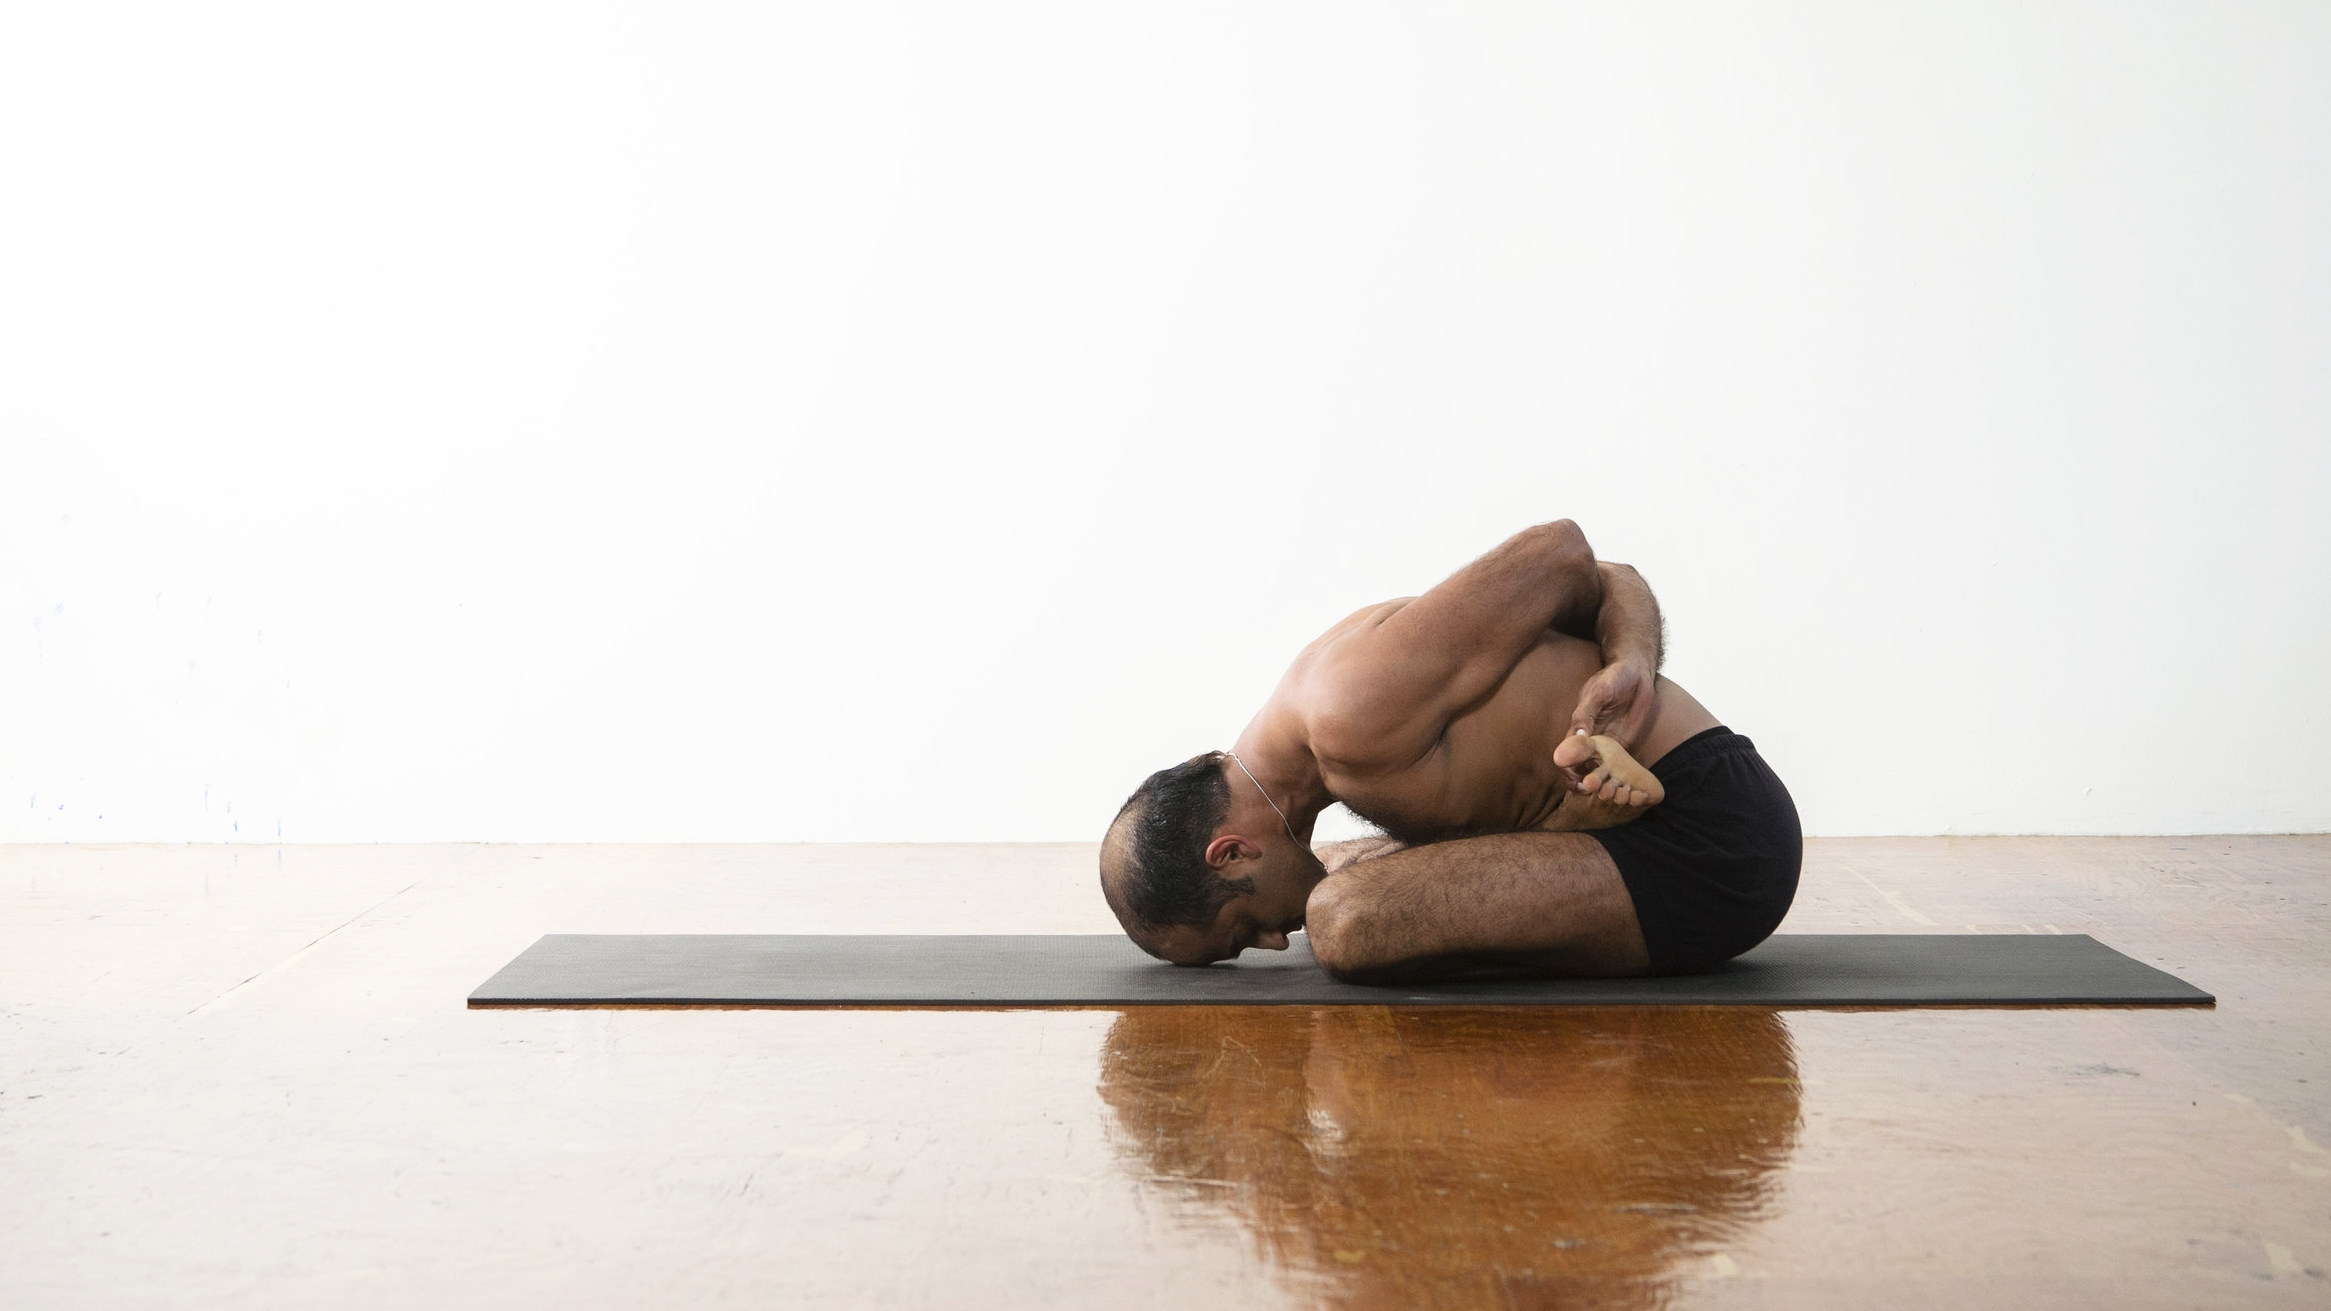 """WIth a Firm Grip on the Finite, a move towards the Infinite. Drawing the Fragrance"" —BKS Iyengar, The Art of Yoga"